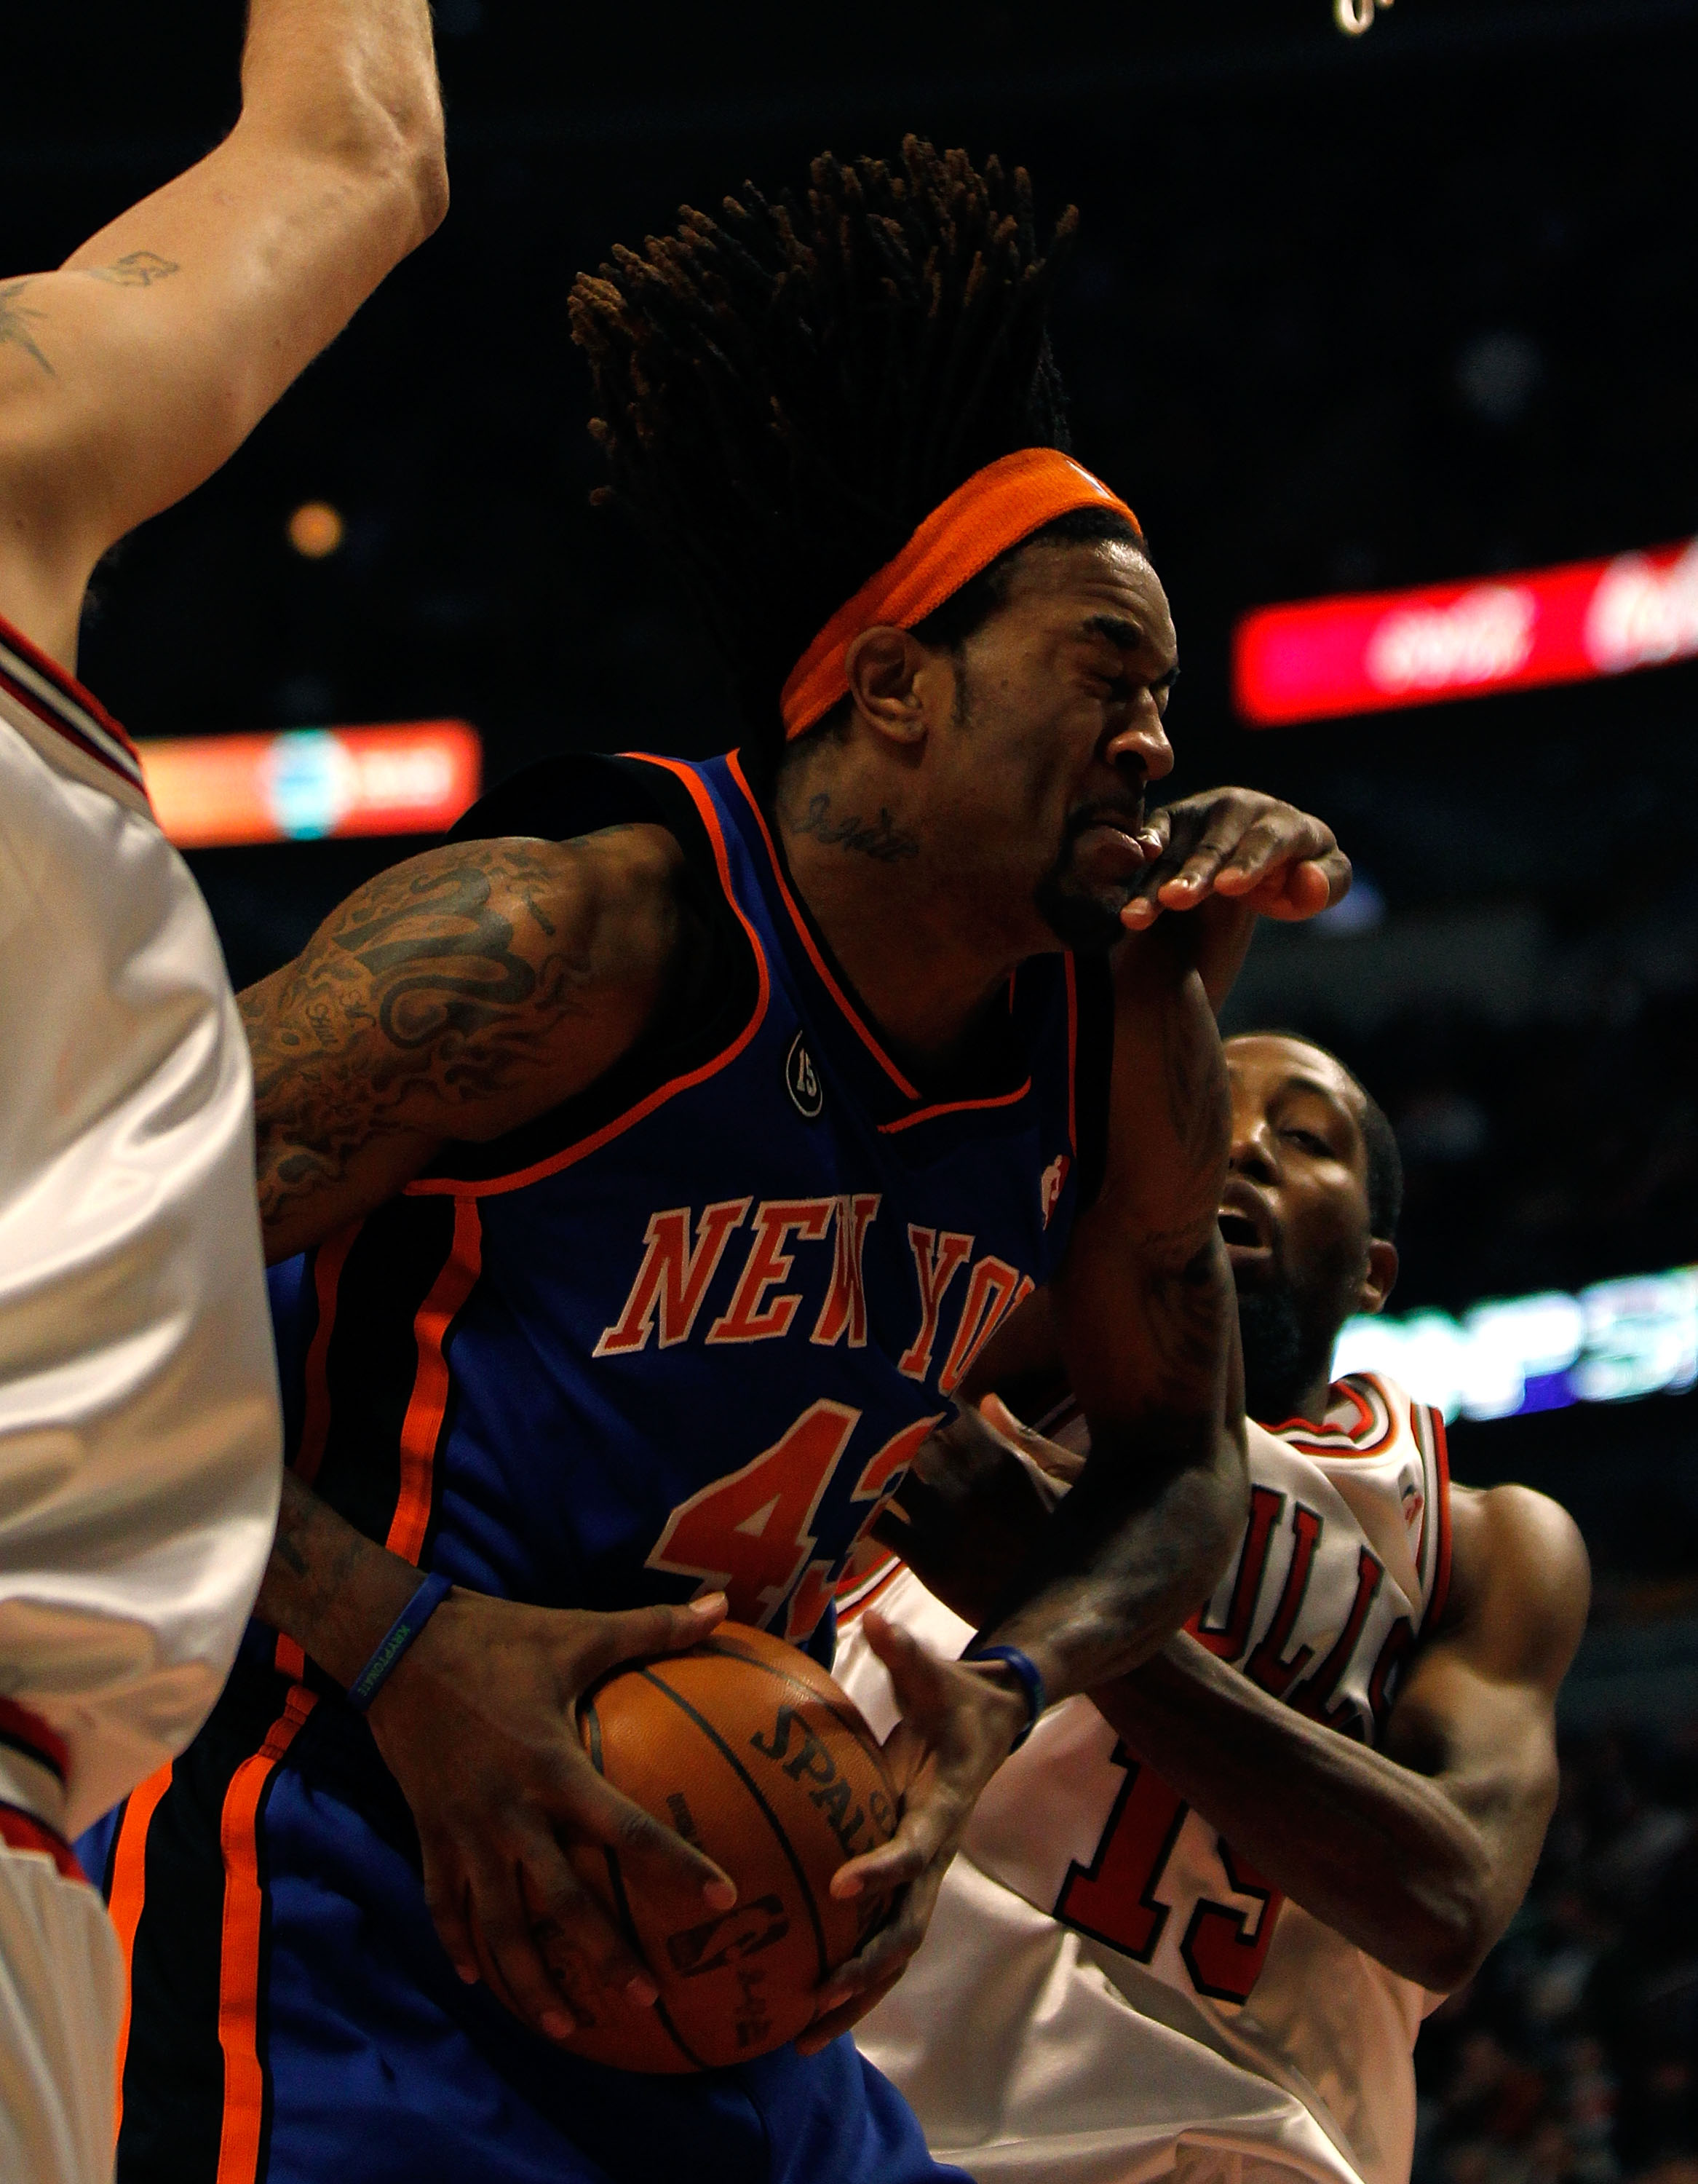 CHICAGO - FEBRUARY 16: John Salmons #15 of the Chicago Bulls gets his hand in the face of Jordan Hill #43 of the New York Knicks as hill tries to shoot at the United Center on February 16, 2010 in Chicago, Illinois. NOTE TO USER: User expressly acknowledg